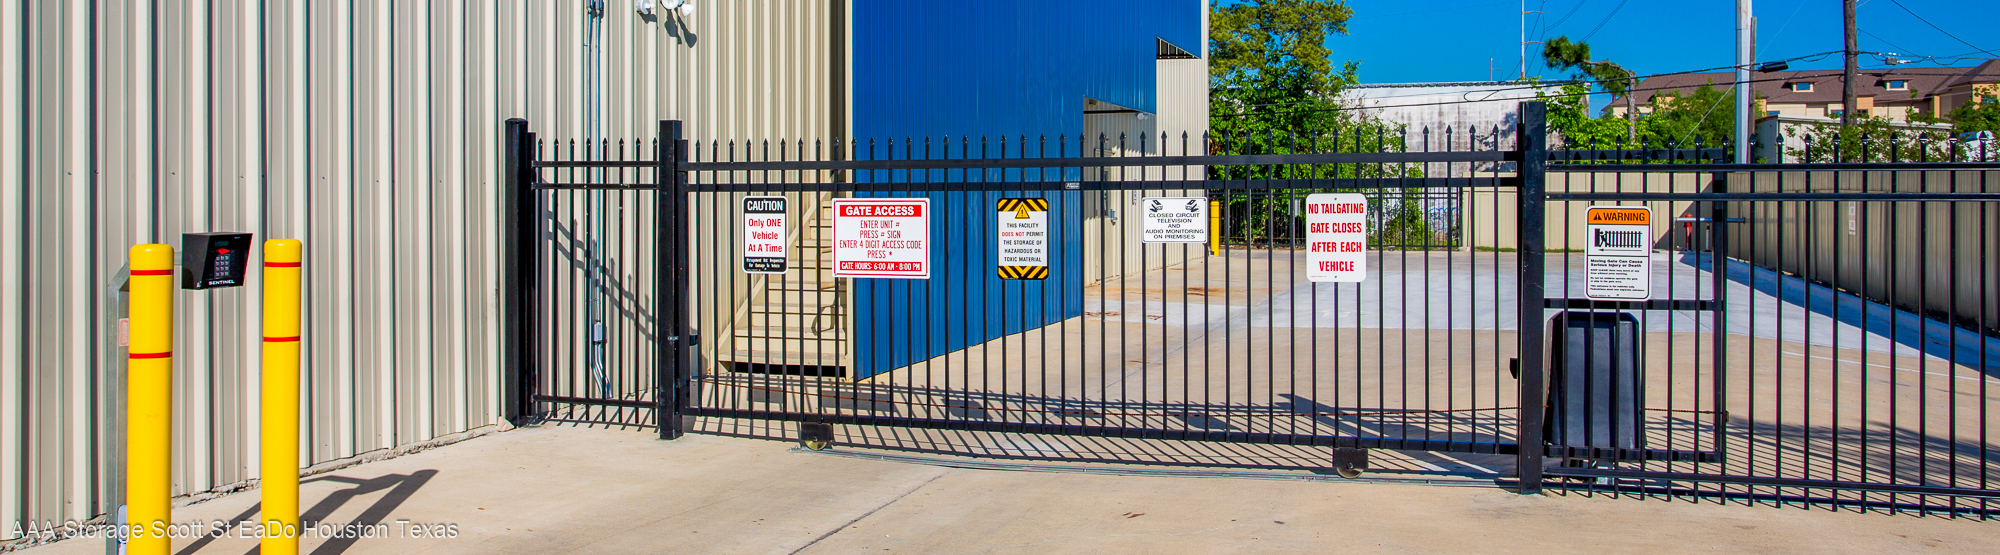 Security is First at AAA Storage in Eado Houston TX